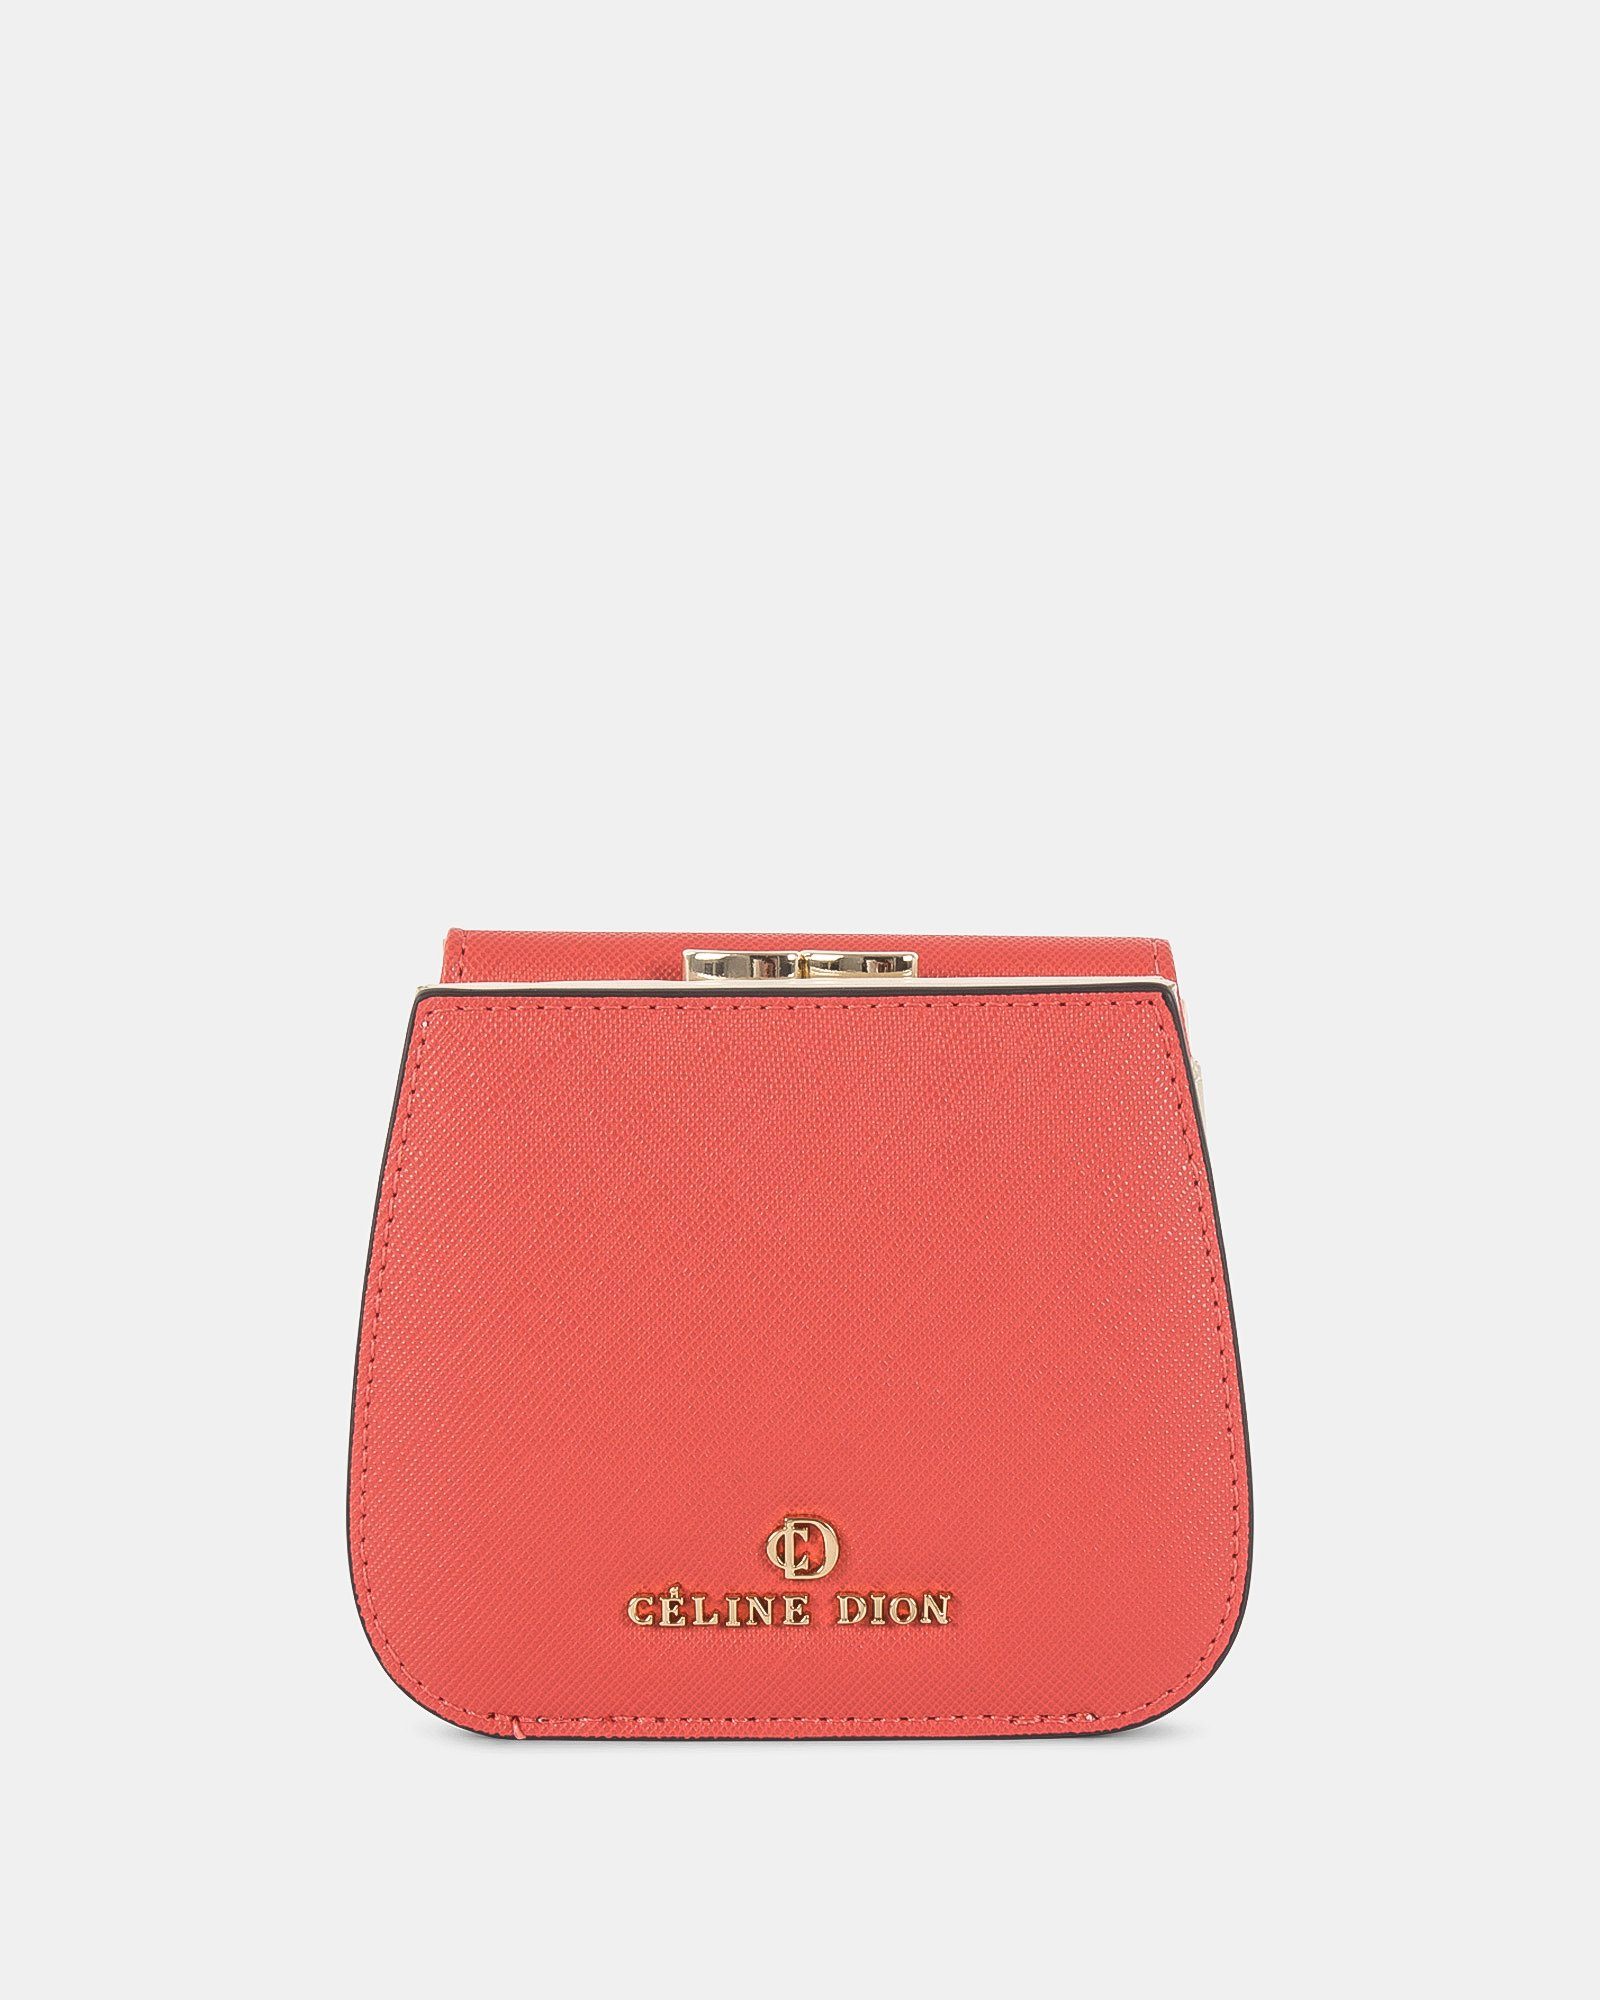 GRAZIOSO - Small rounded wallet with integrated coin clasp - Coral - Céline Dion - Zoom